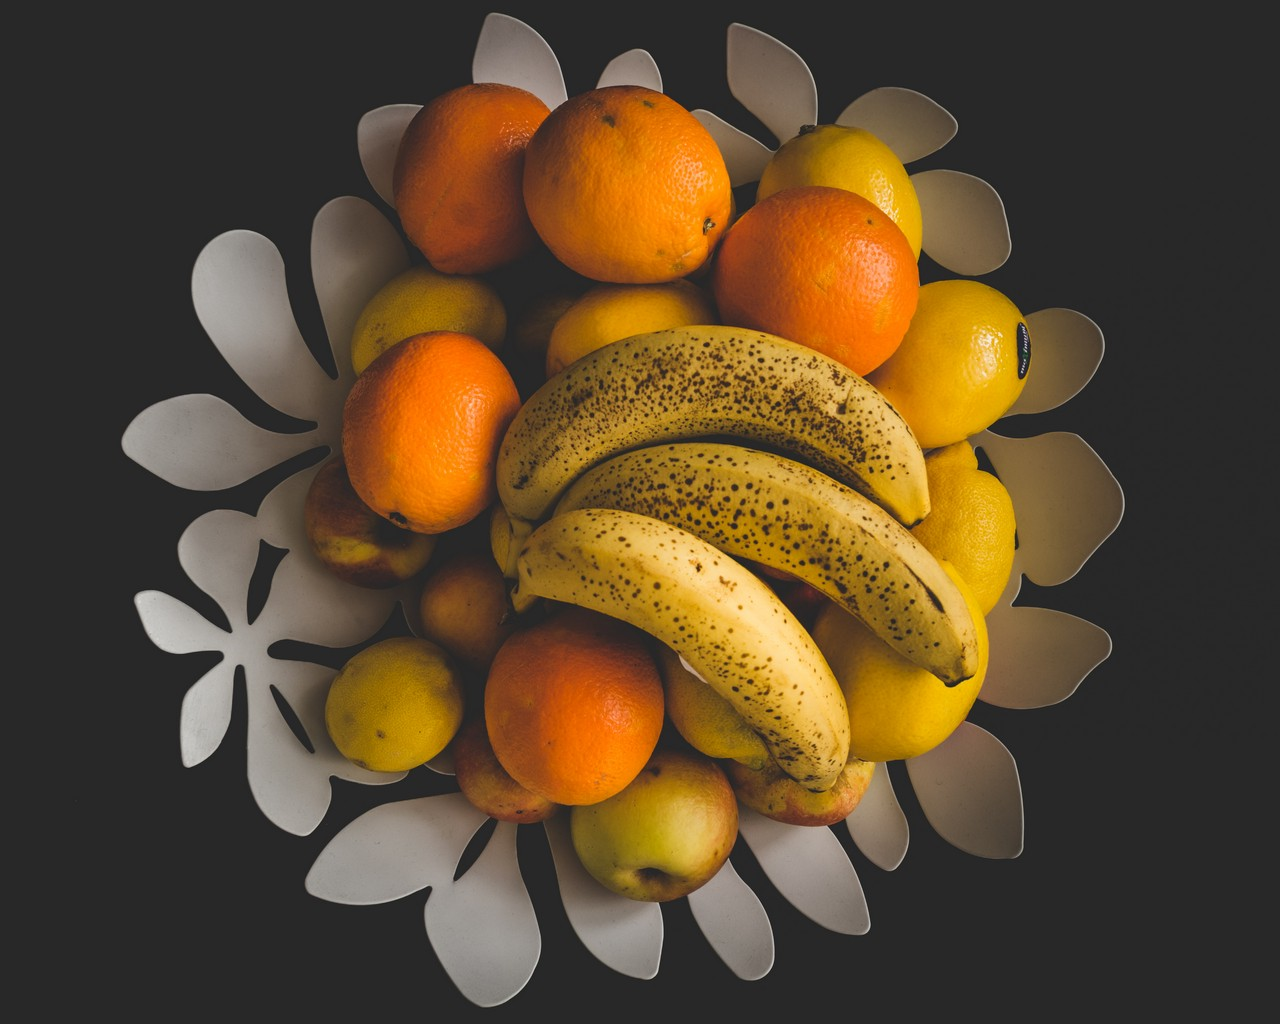 Fruit Bowl - free food-drink images to use - yellow, orange, fruits, food